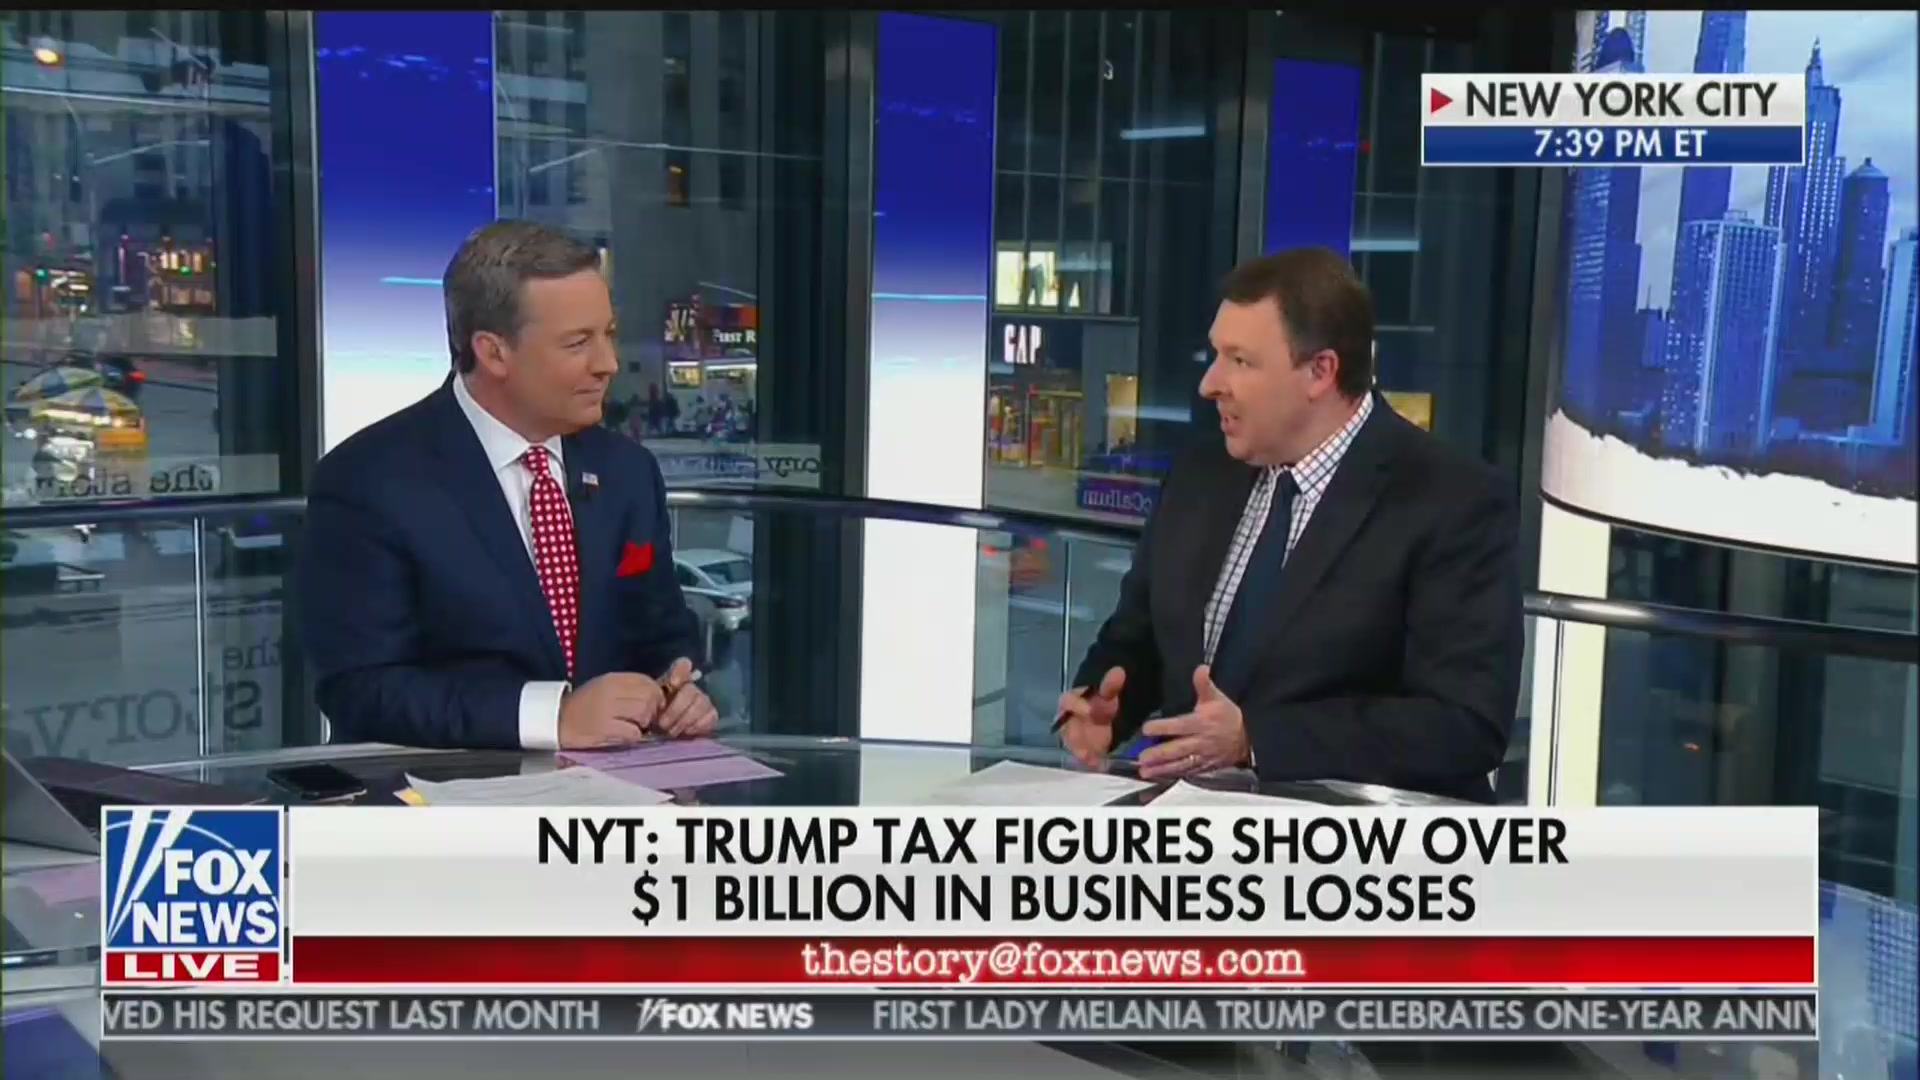 Fox News Reacts to Trump Tax Blockbuster: He 'Has the Best Accountants in the World'